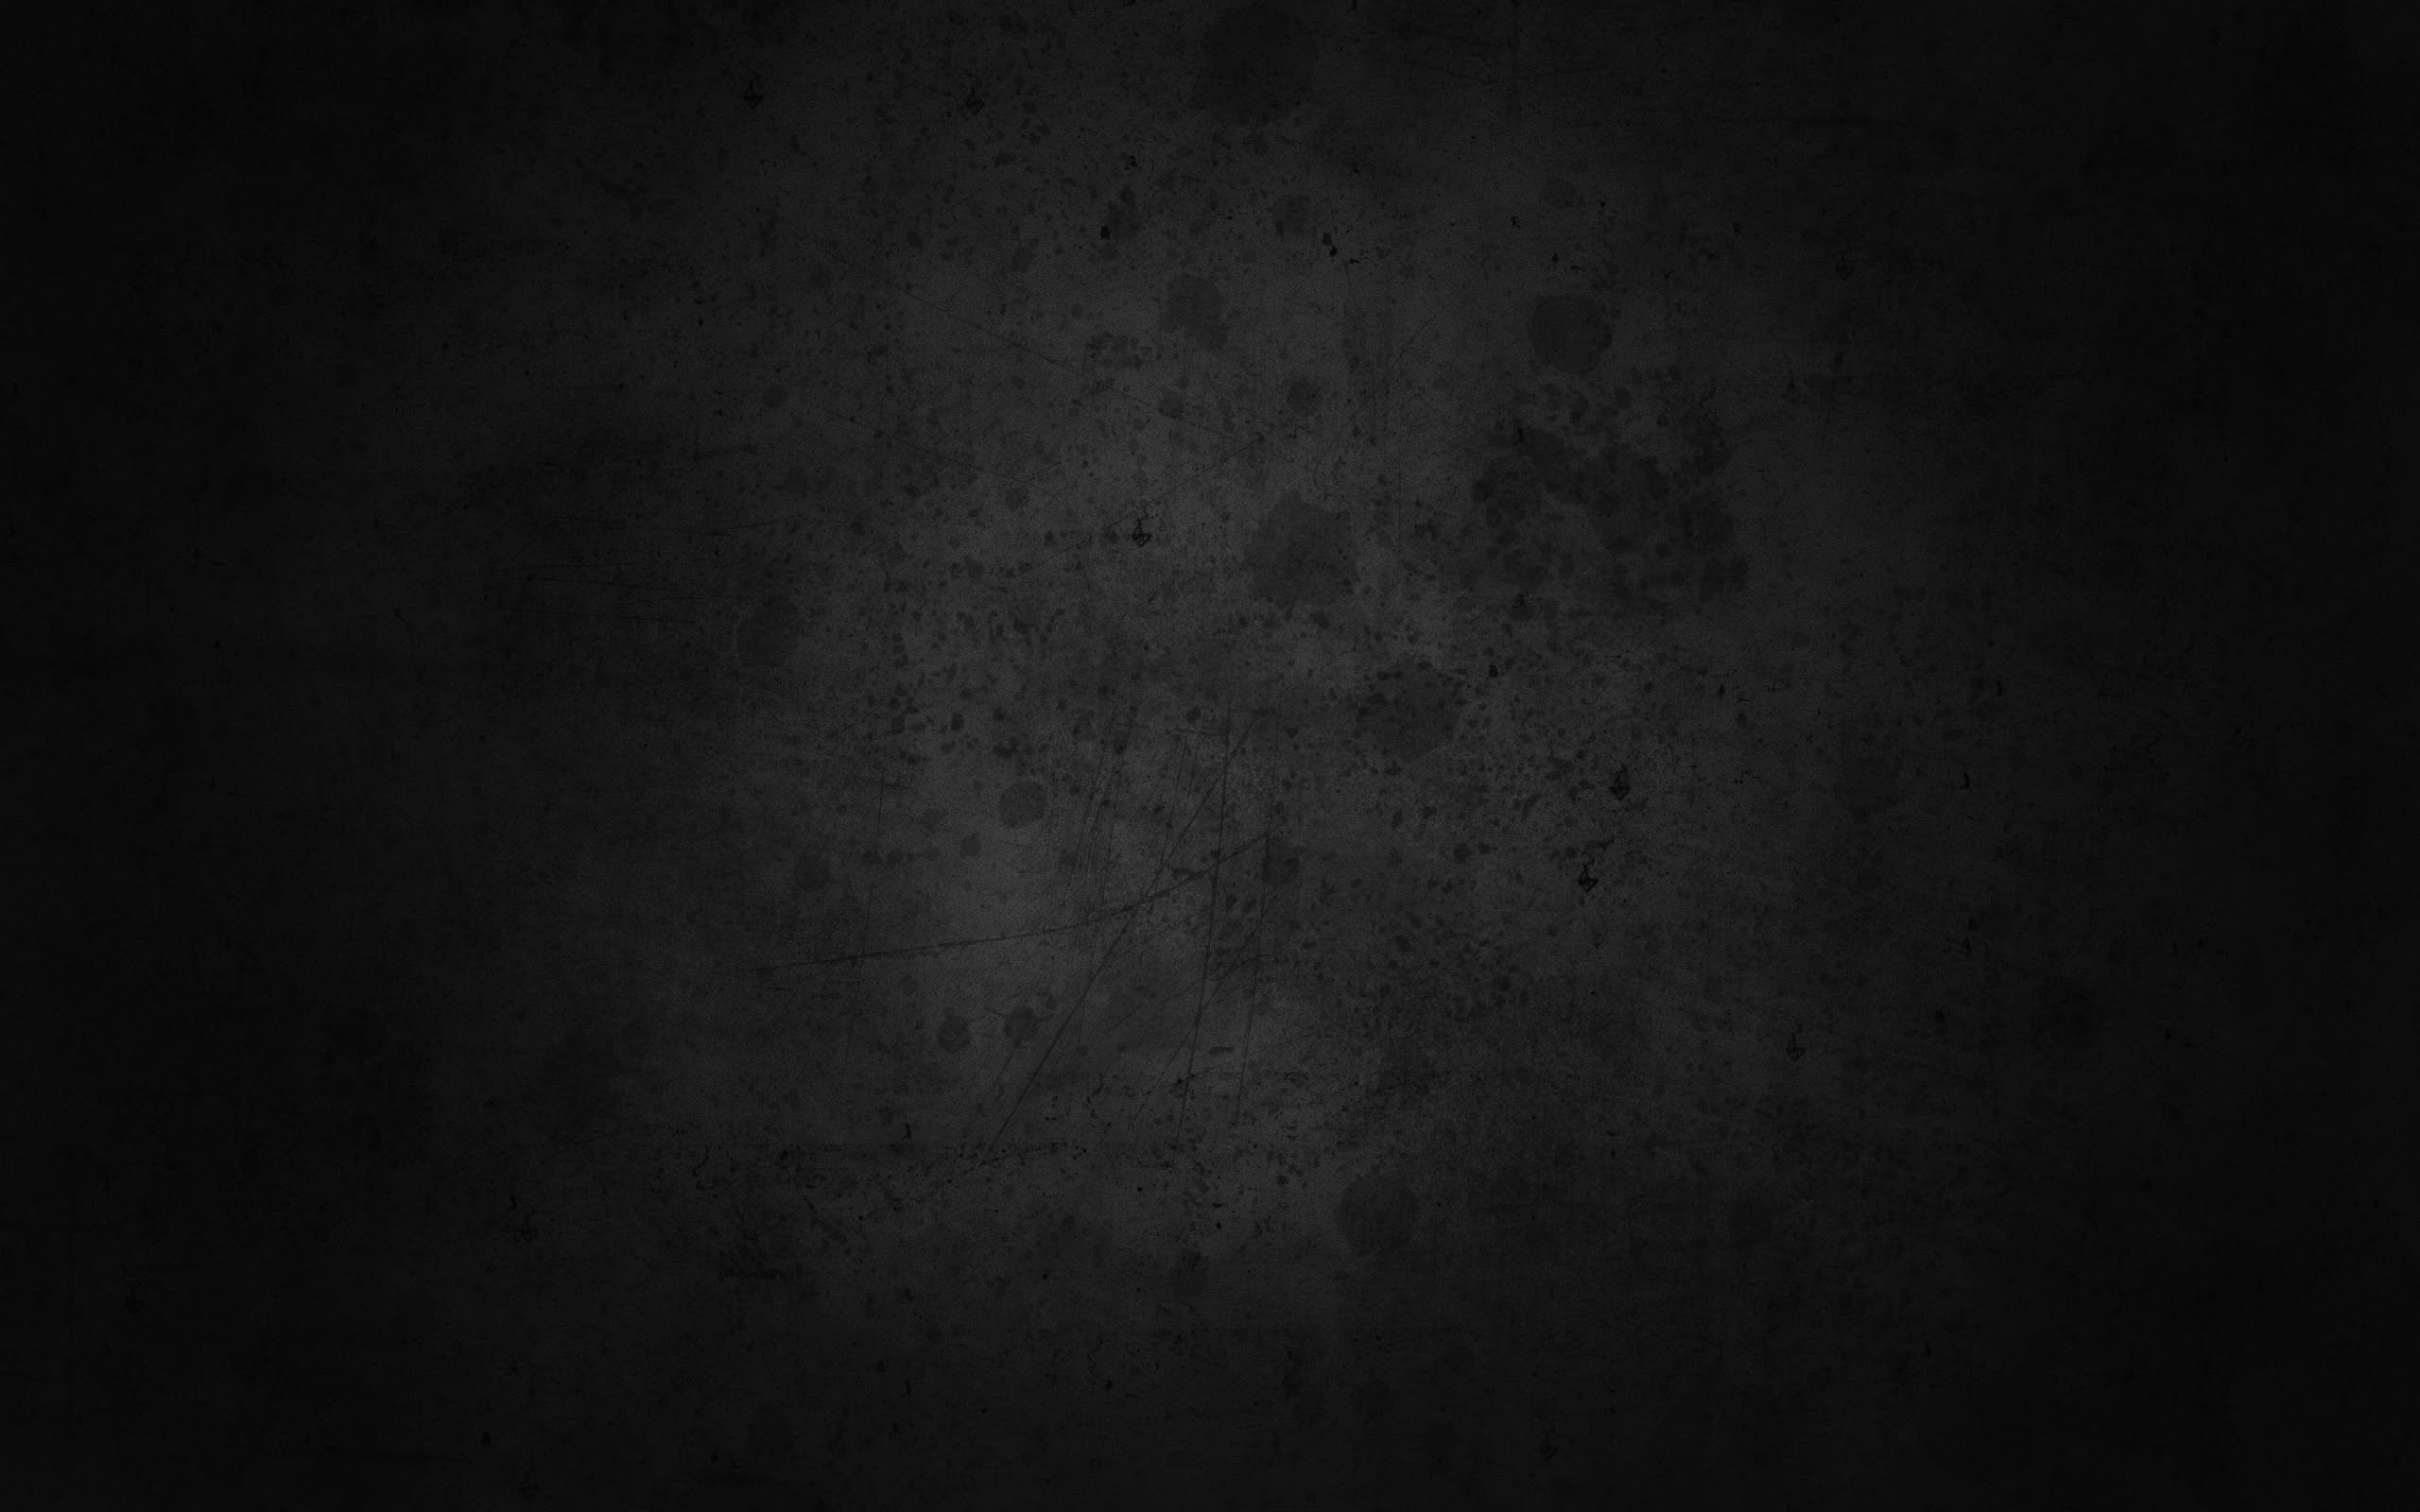 50 Black Wallpaper In Fhd For Free Download For Android Desktop Images, Photos, Reviews